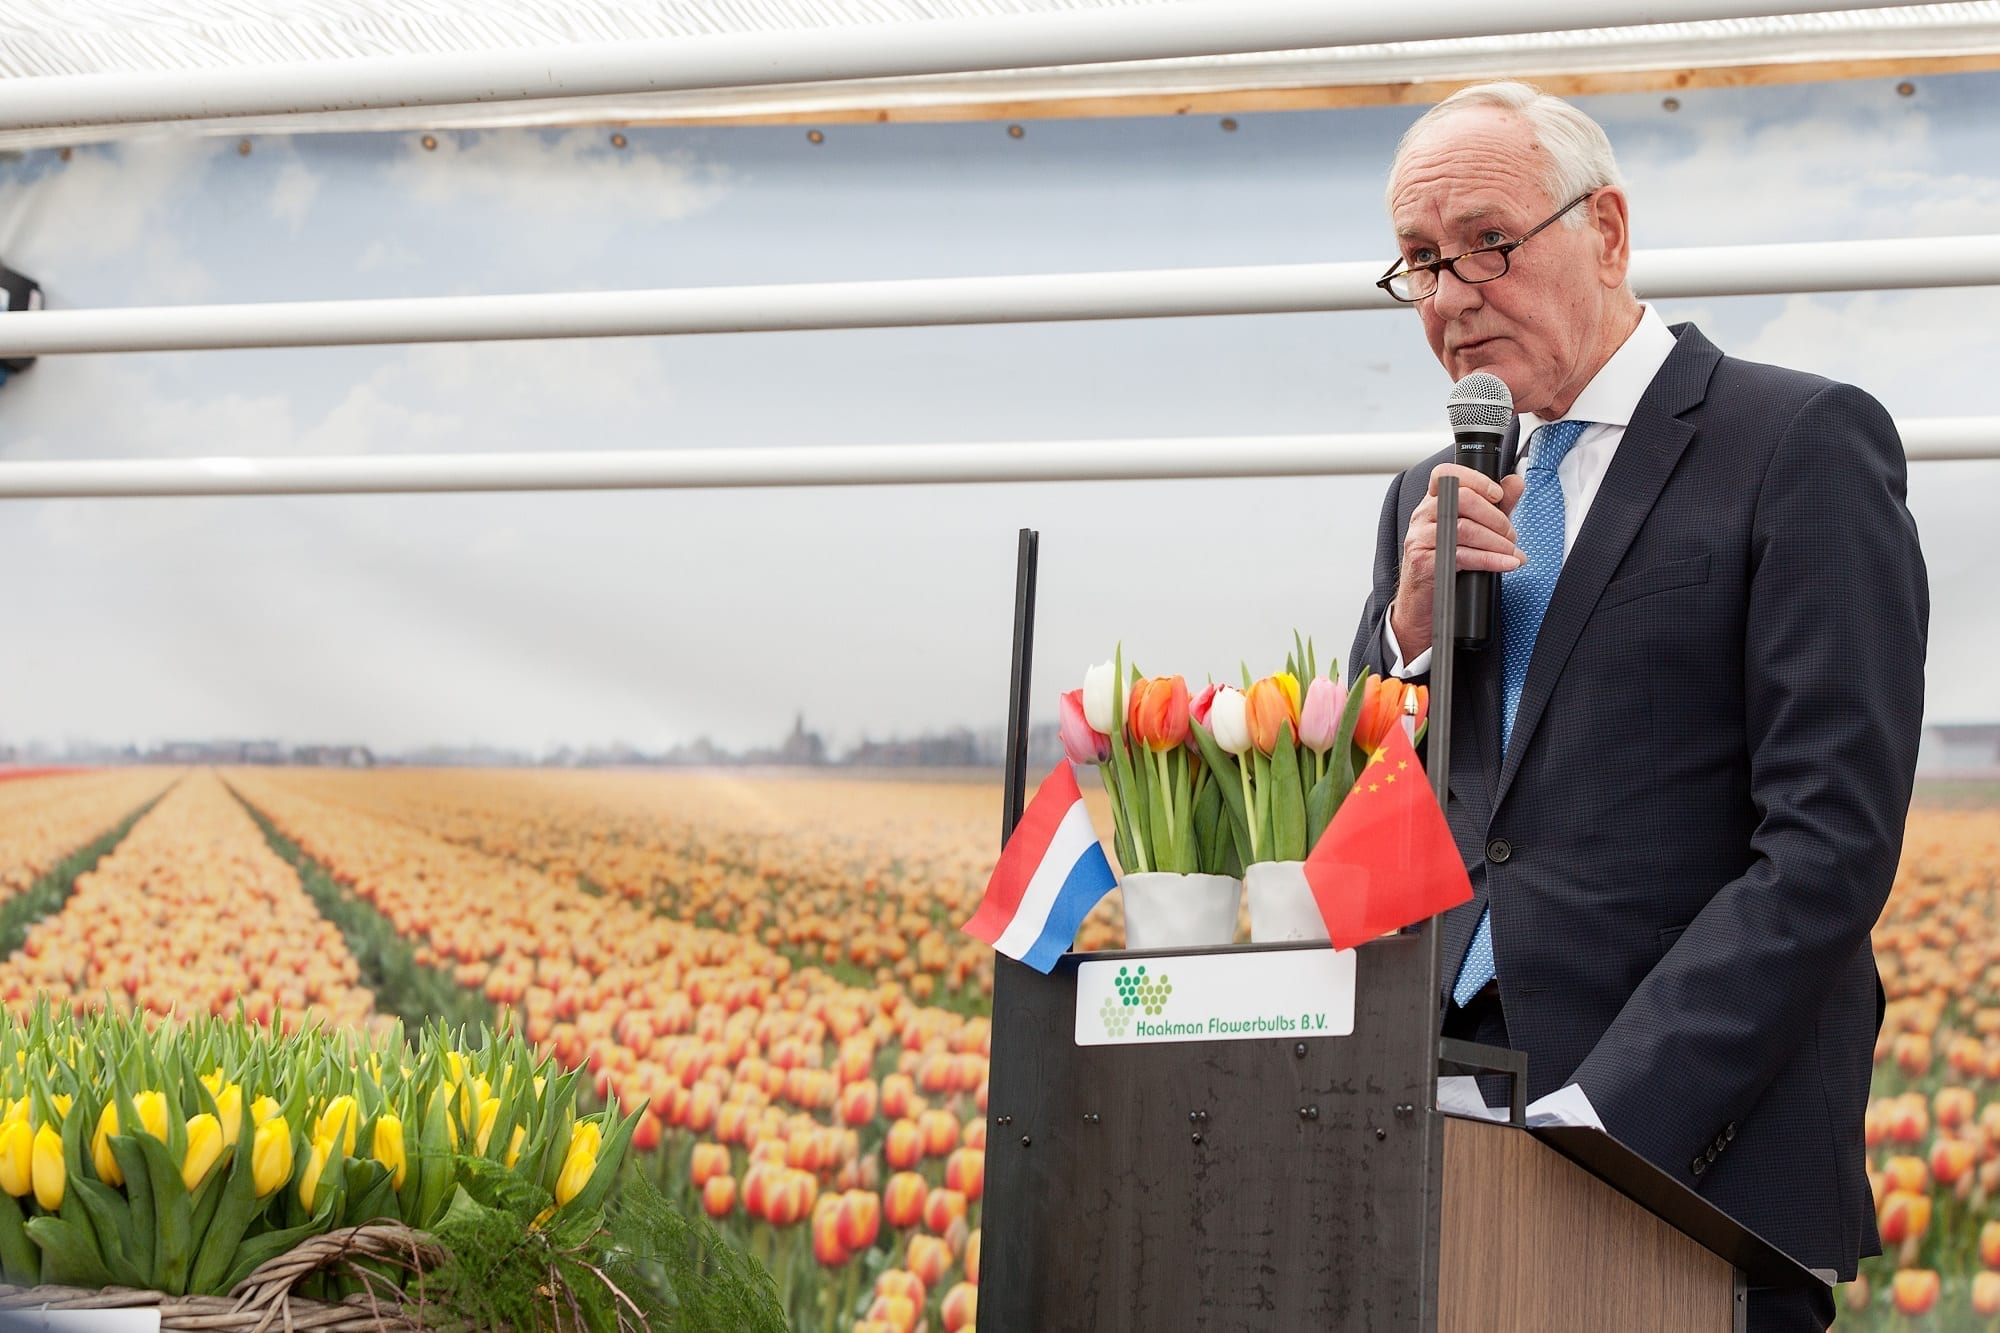 20170315 - Photo - Royal Commissioner speeches during Tulip Trade Event